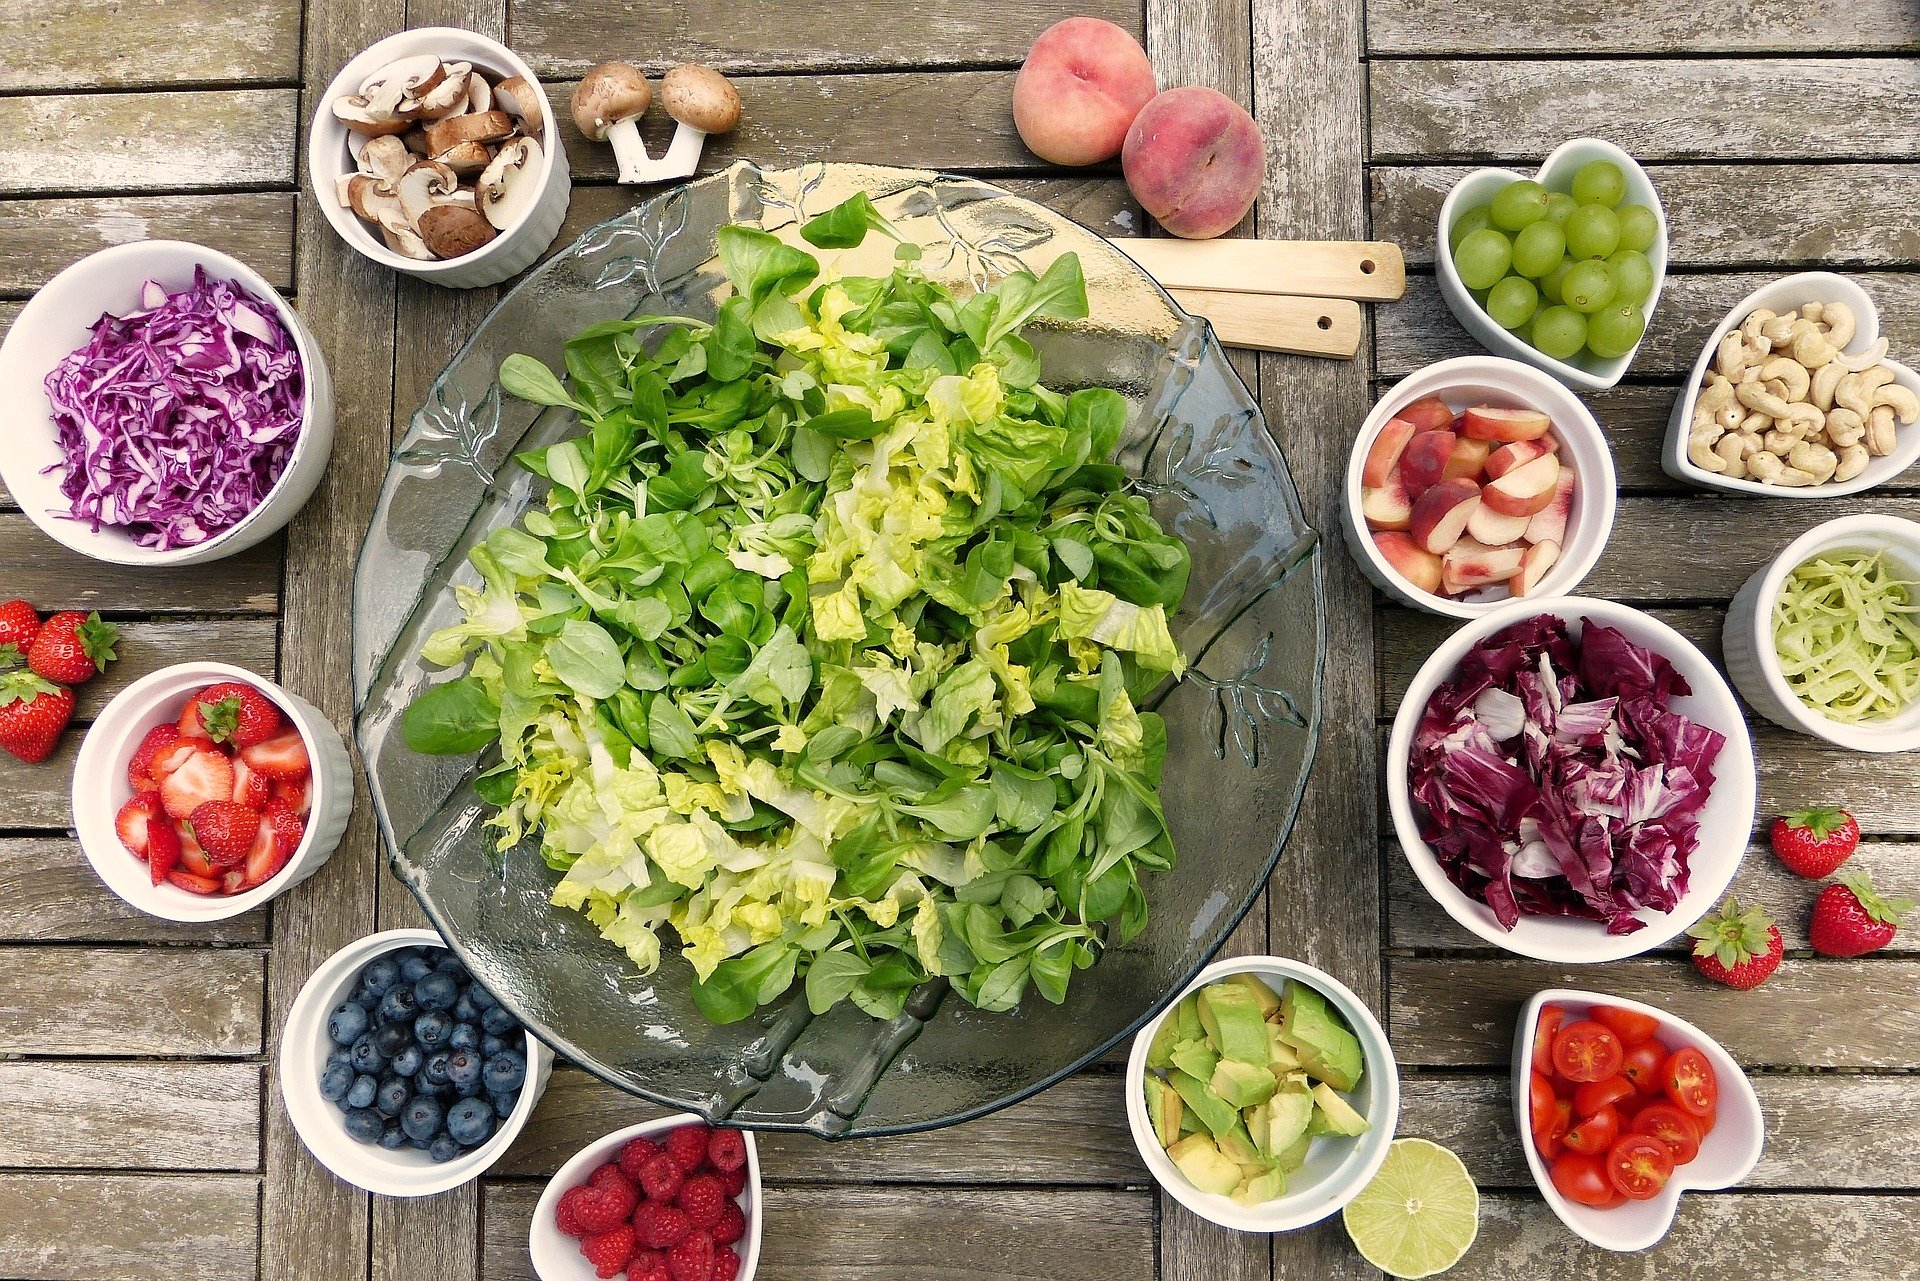 Healthy salad, vegetables on a wooden table